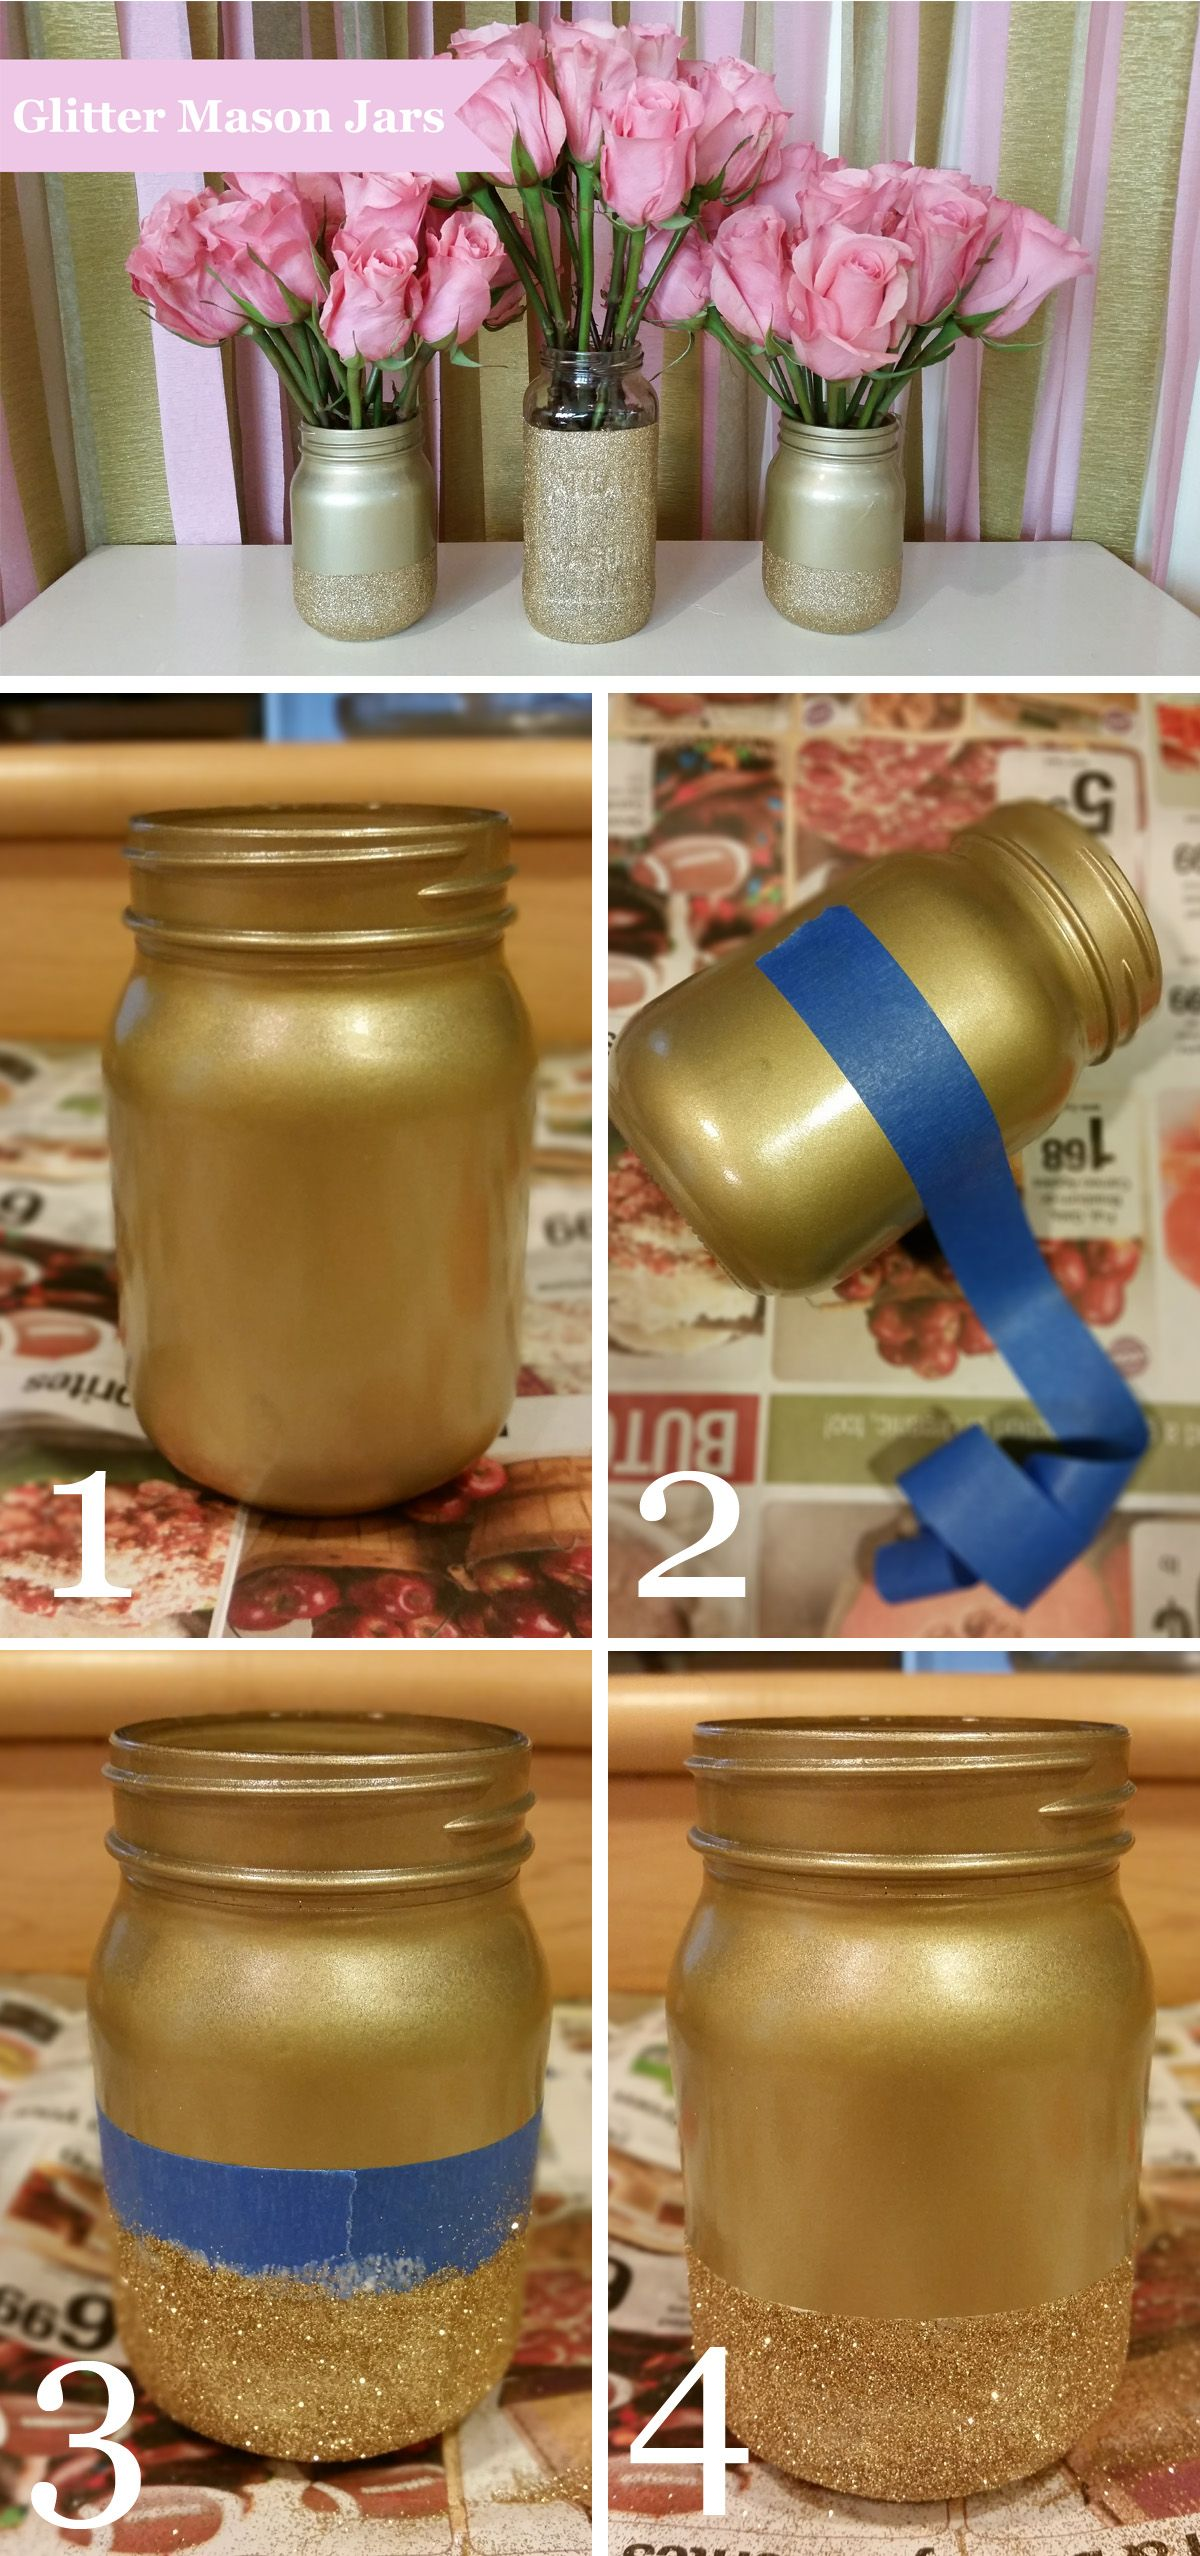 photos diy wedding mason jars of with smartphone high resolution how to make glitter pink and gold centerpiece